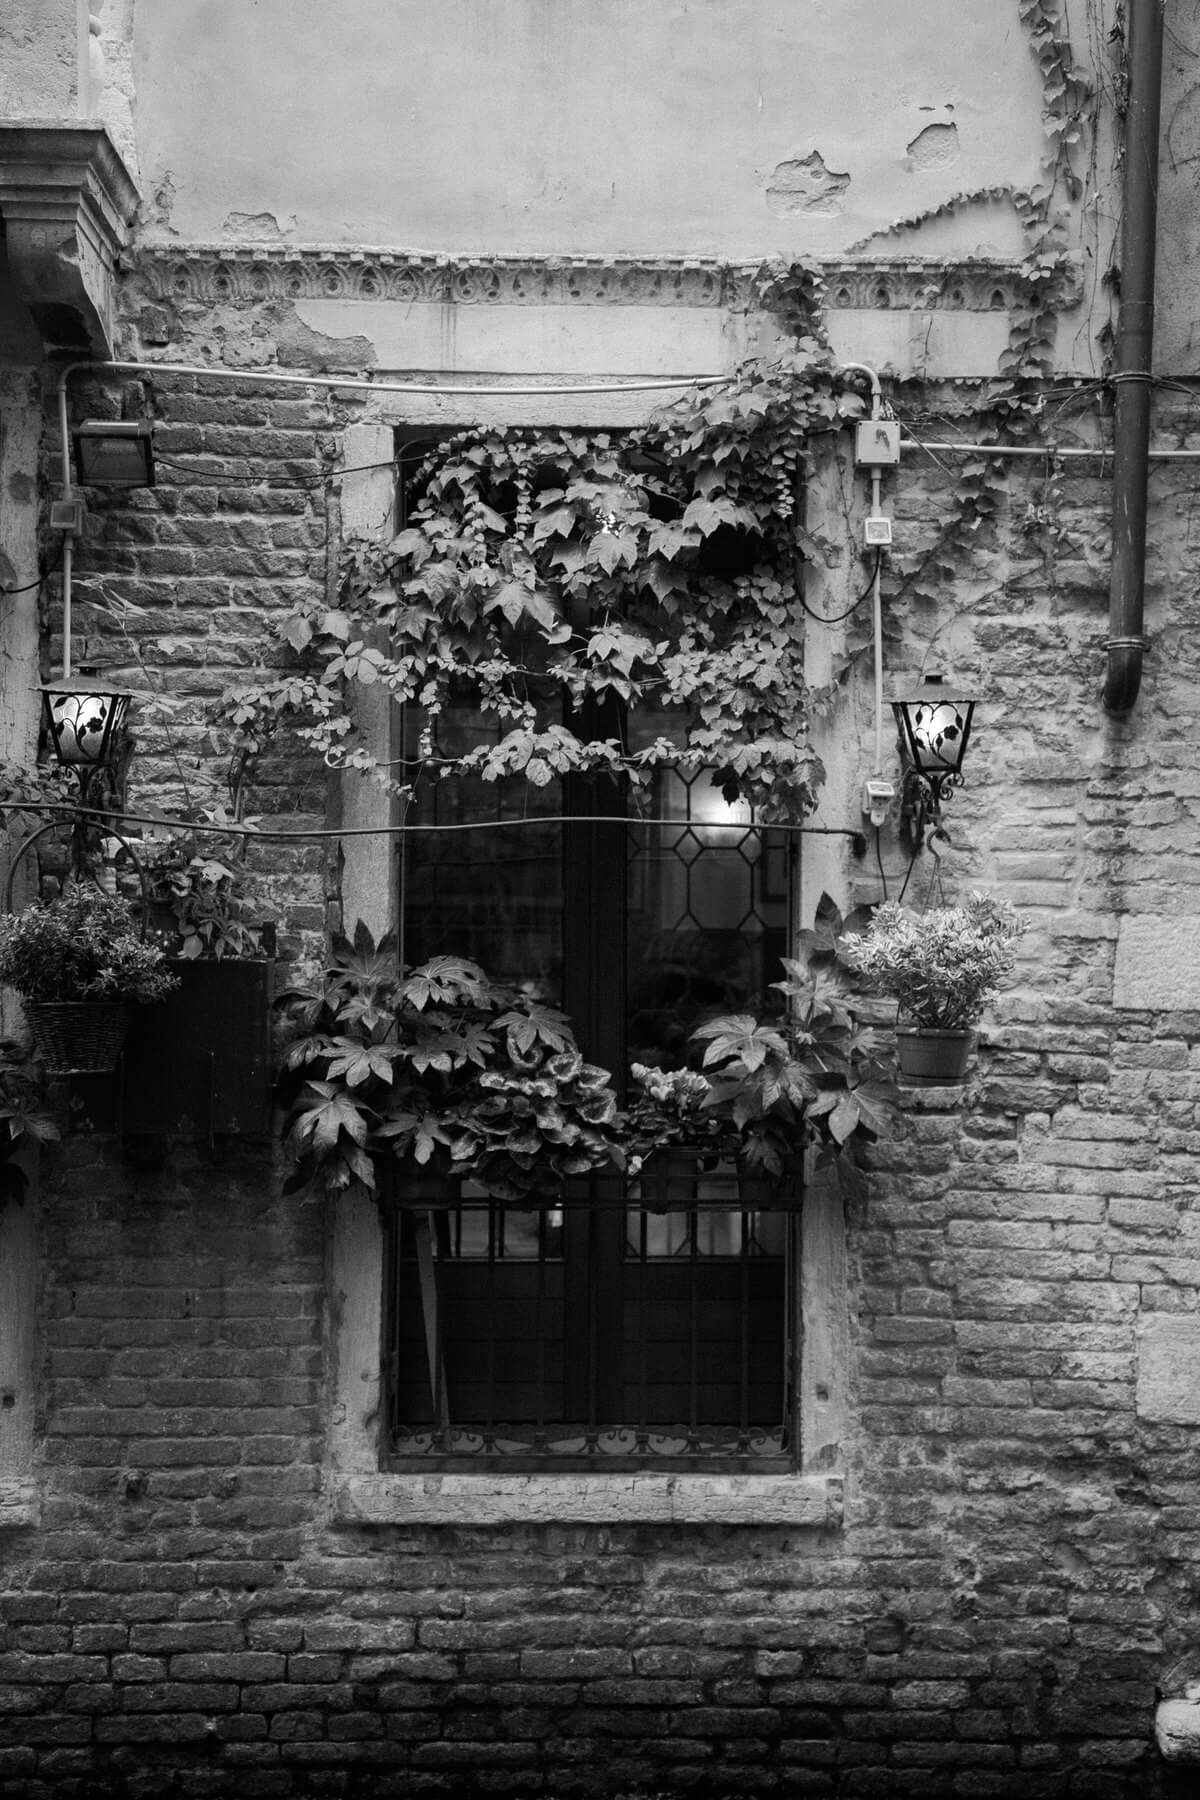 Venice-Italy-black-and-white-fine-art-photography-by-Studio-L-photographer-Laura-Schneider-_4013